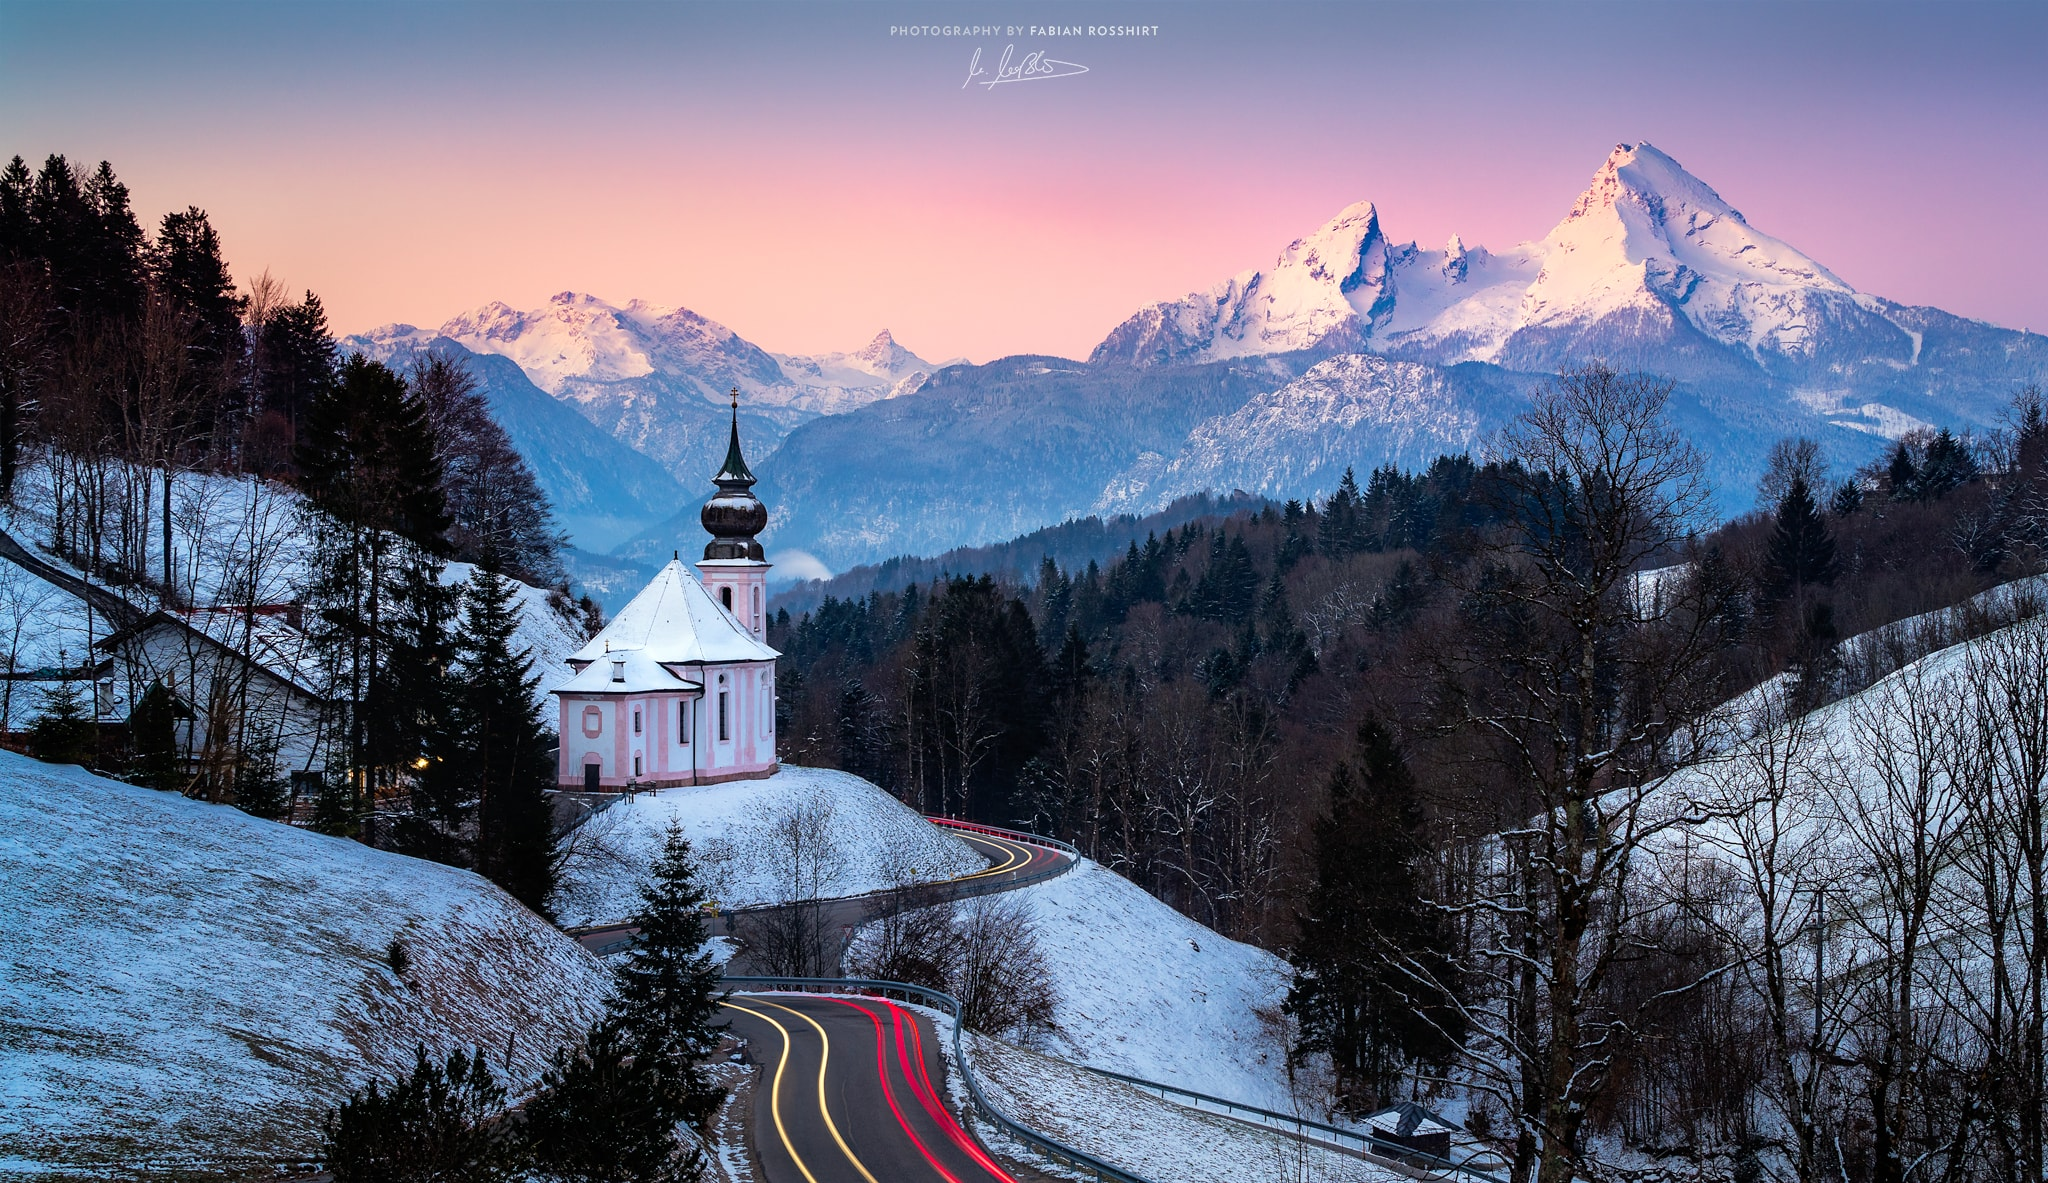 Maria Gern, Kapelle, Watzmann, Berg, Sonnenaufgang, Pink, Morgen, Morning, Chapell, Sun, Light, MOUNTAIN AWE (Berchtesgaden Wallpaper HD Bilder Hintergrundbild Background)